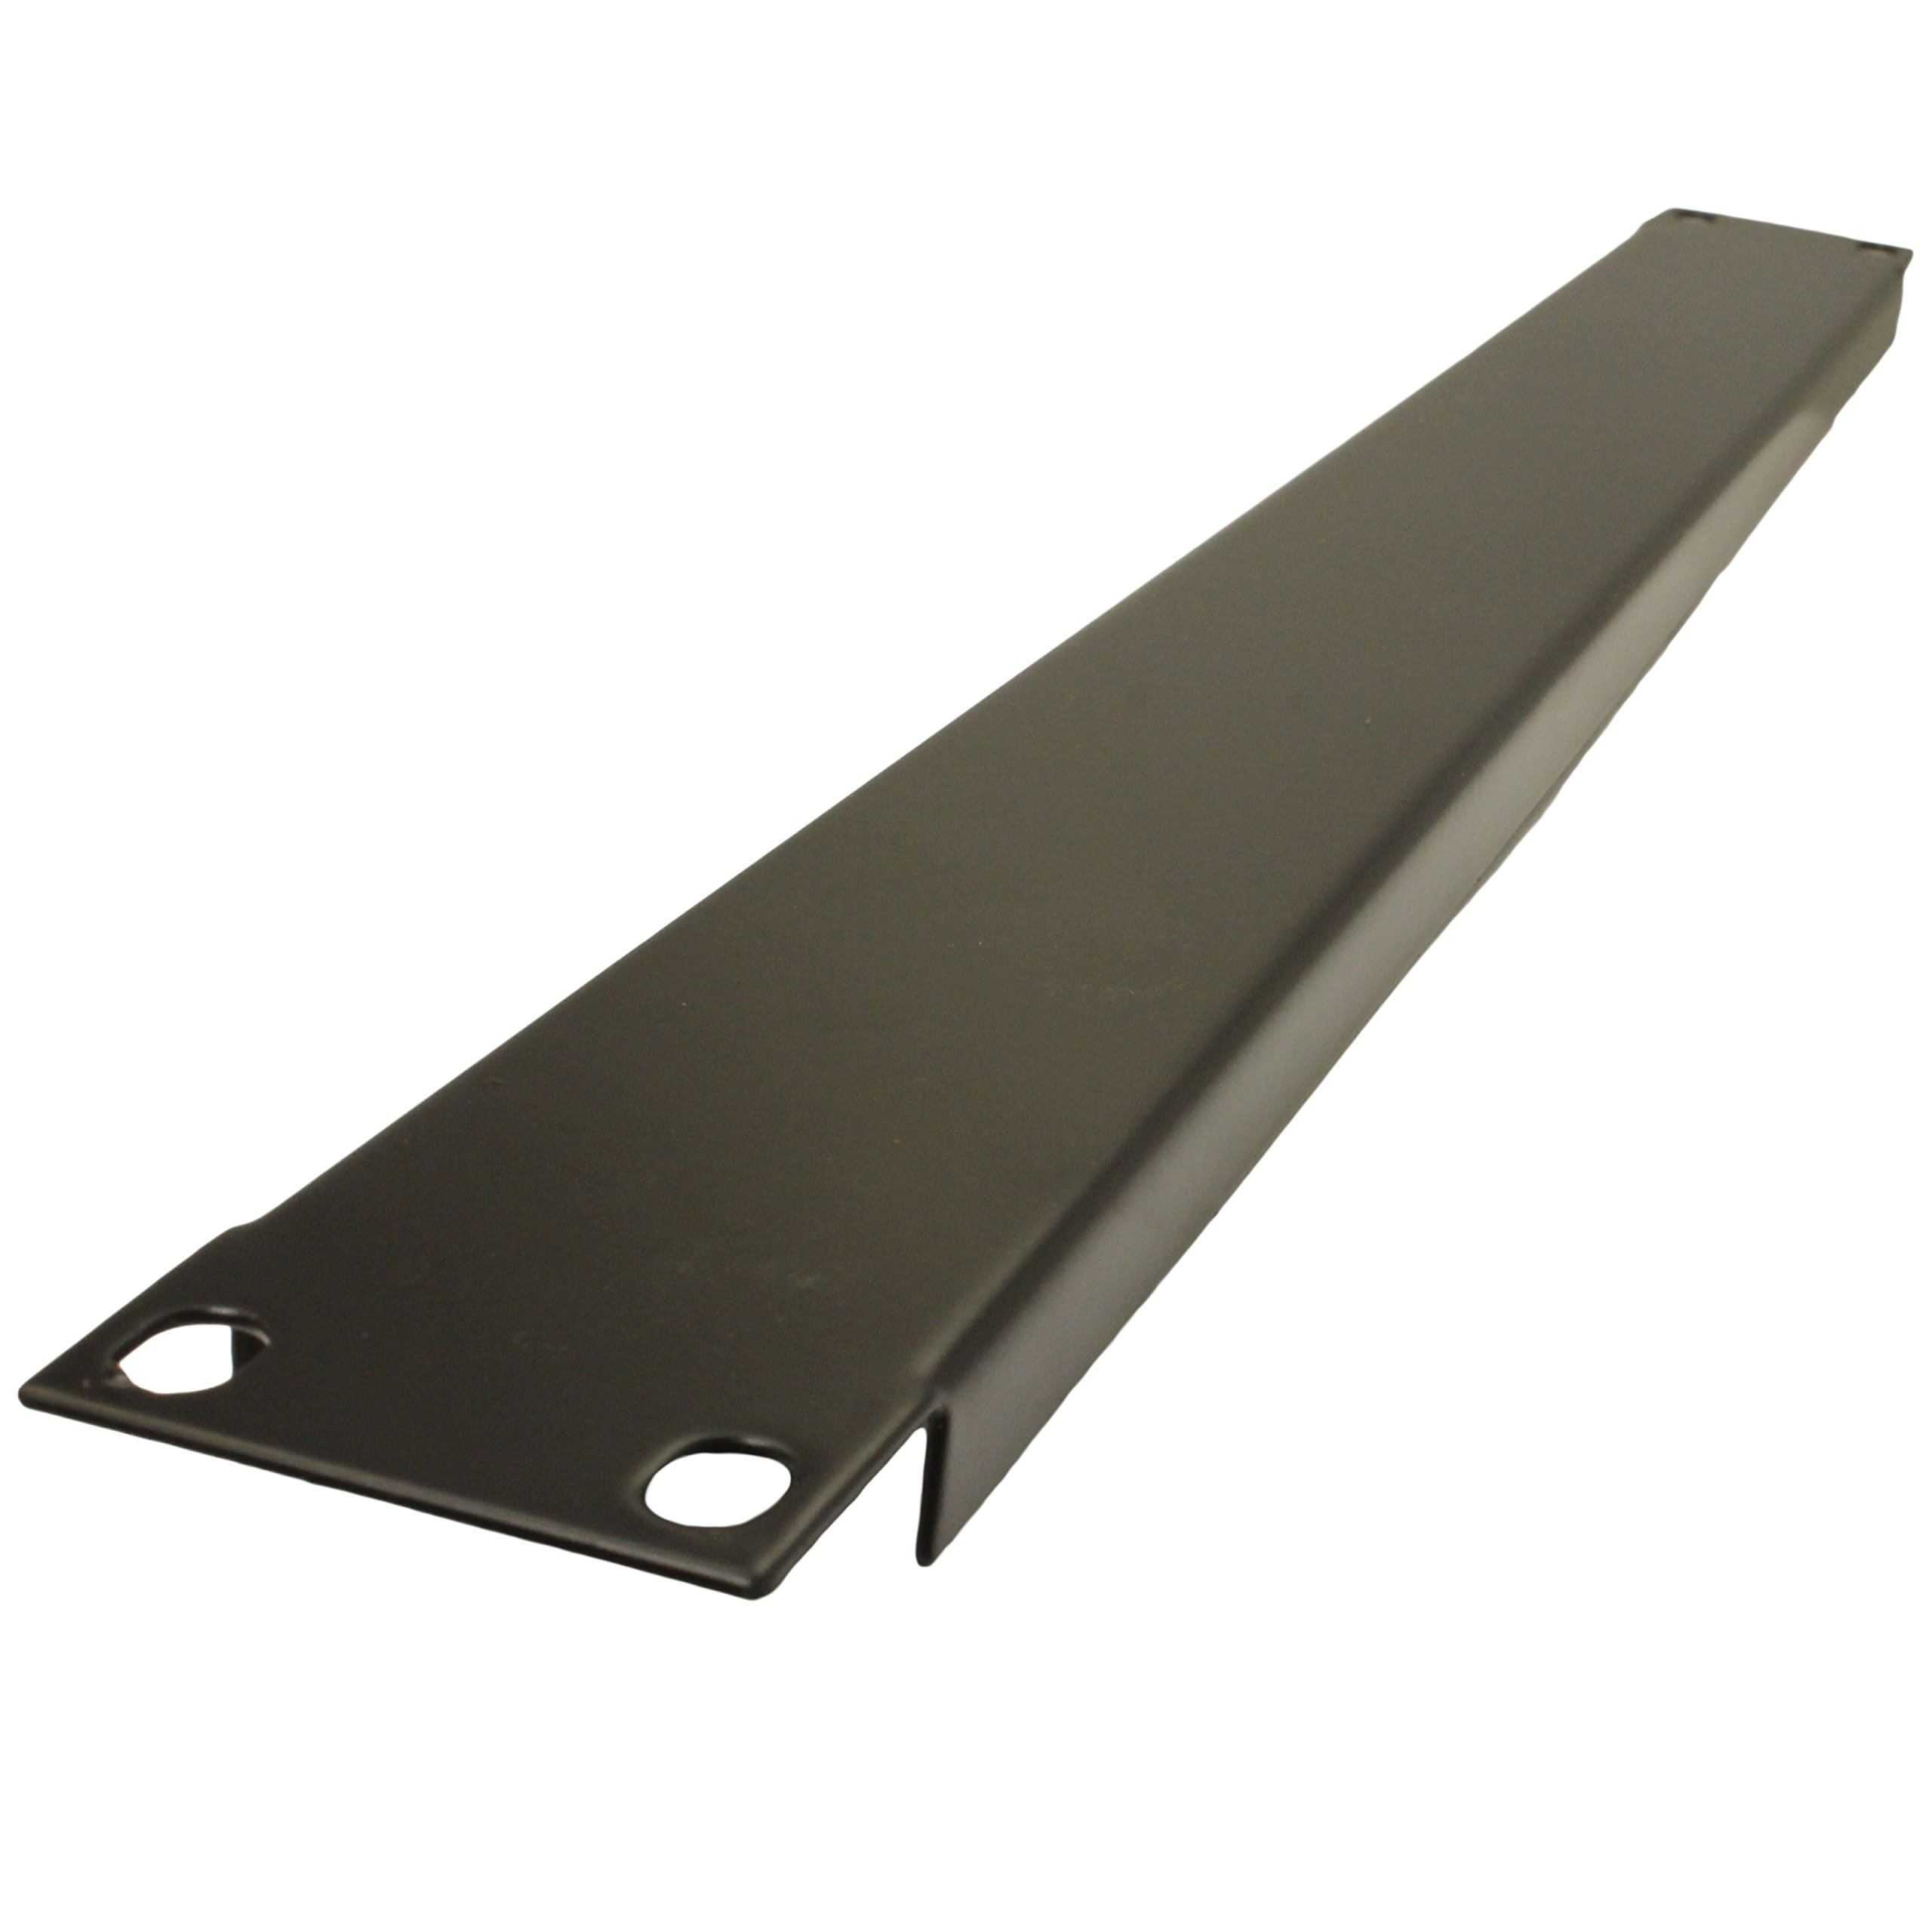 Blank Metal Rack Panel (1U Space)